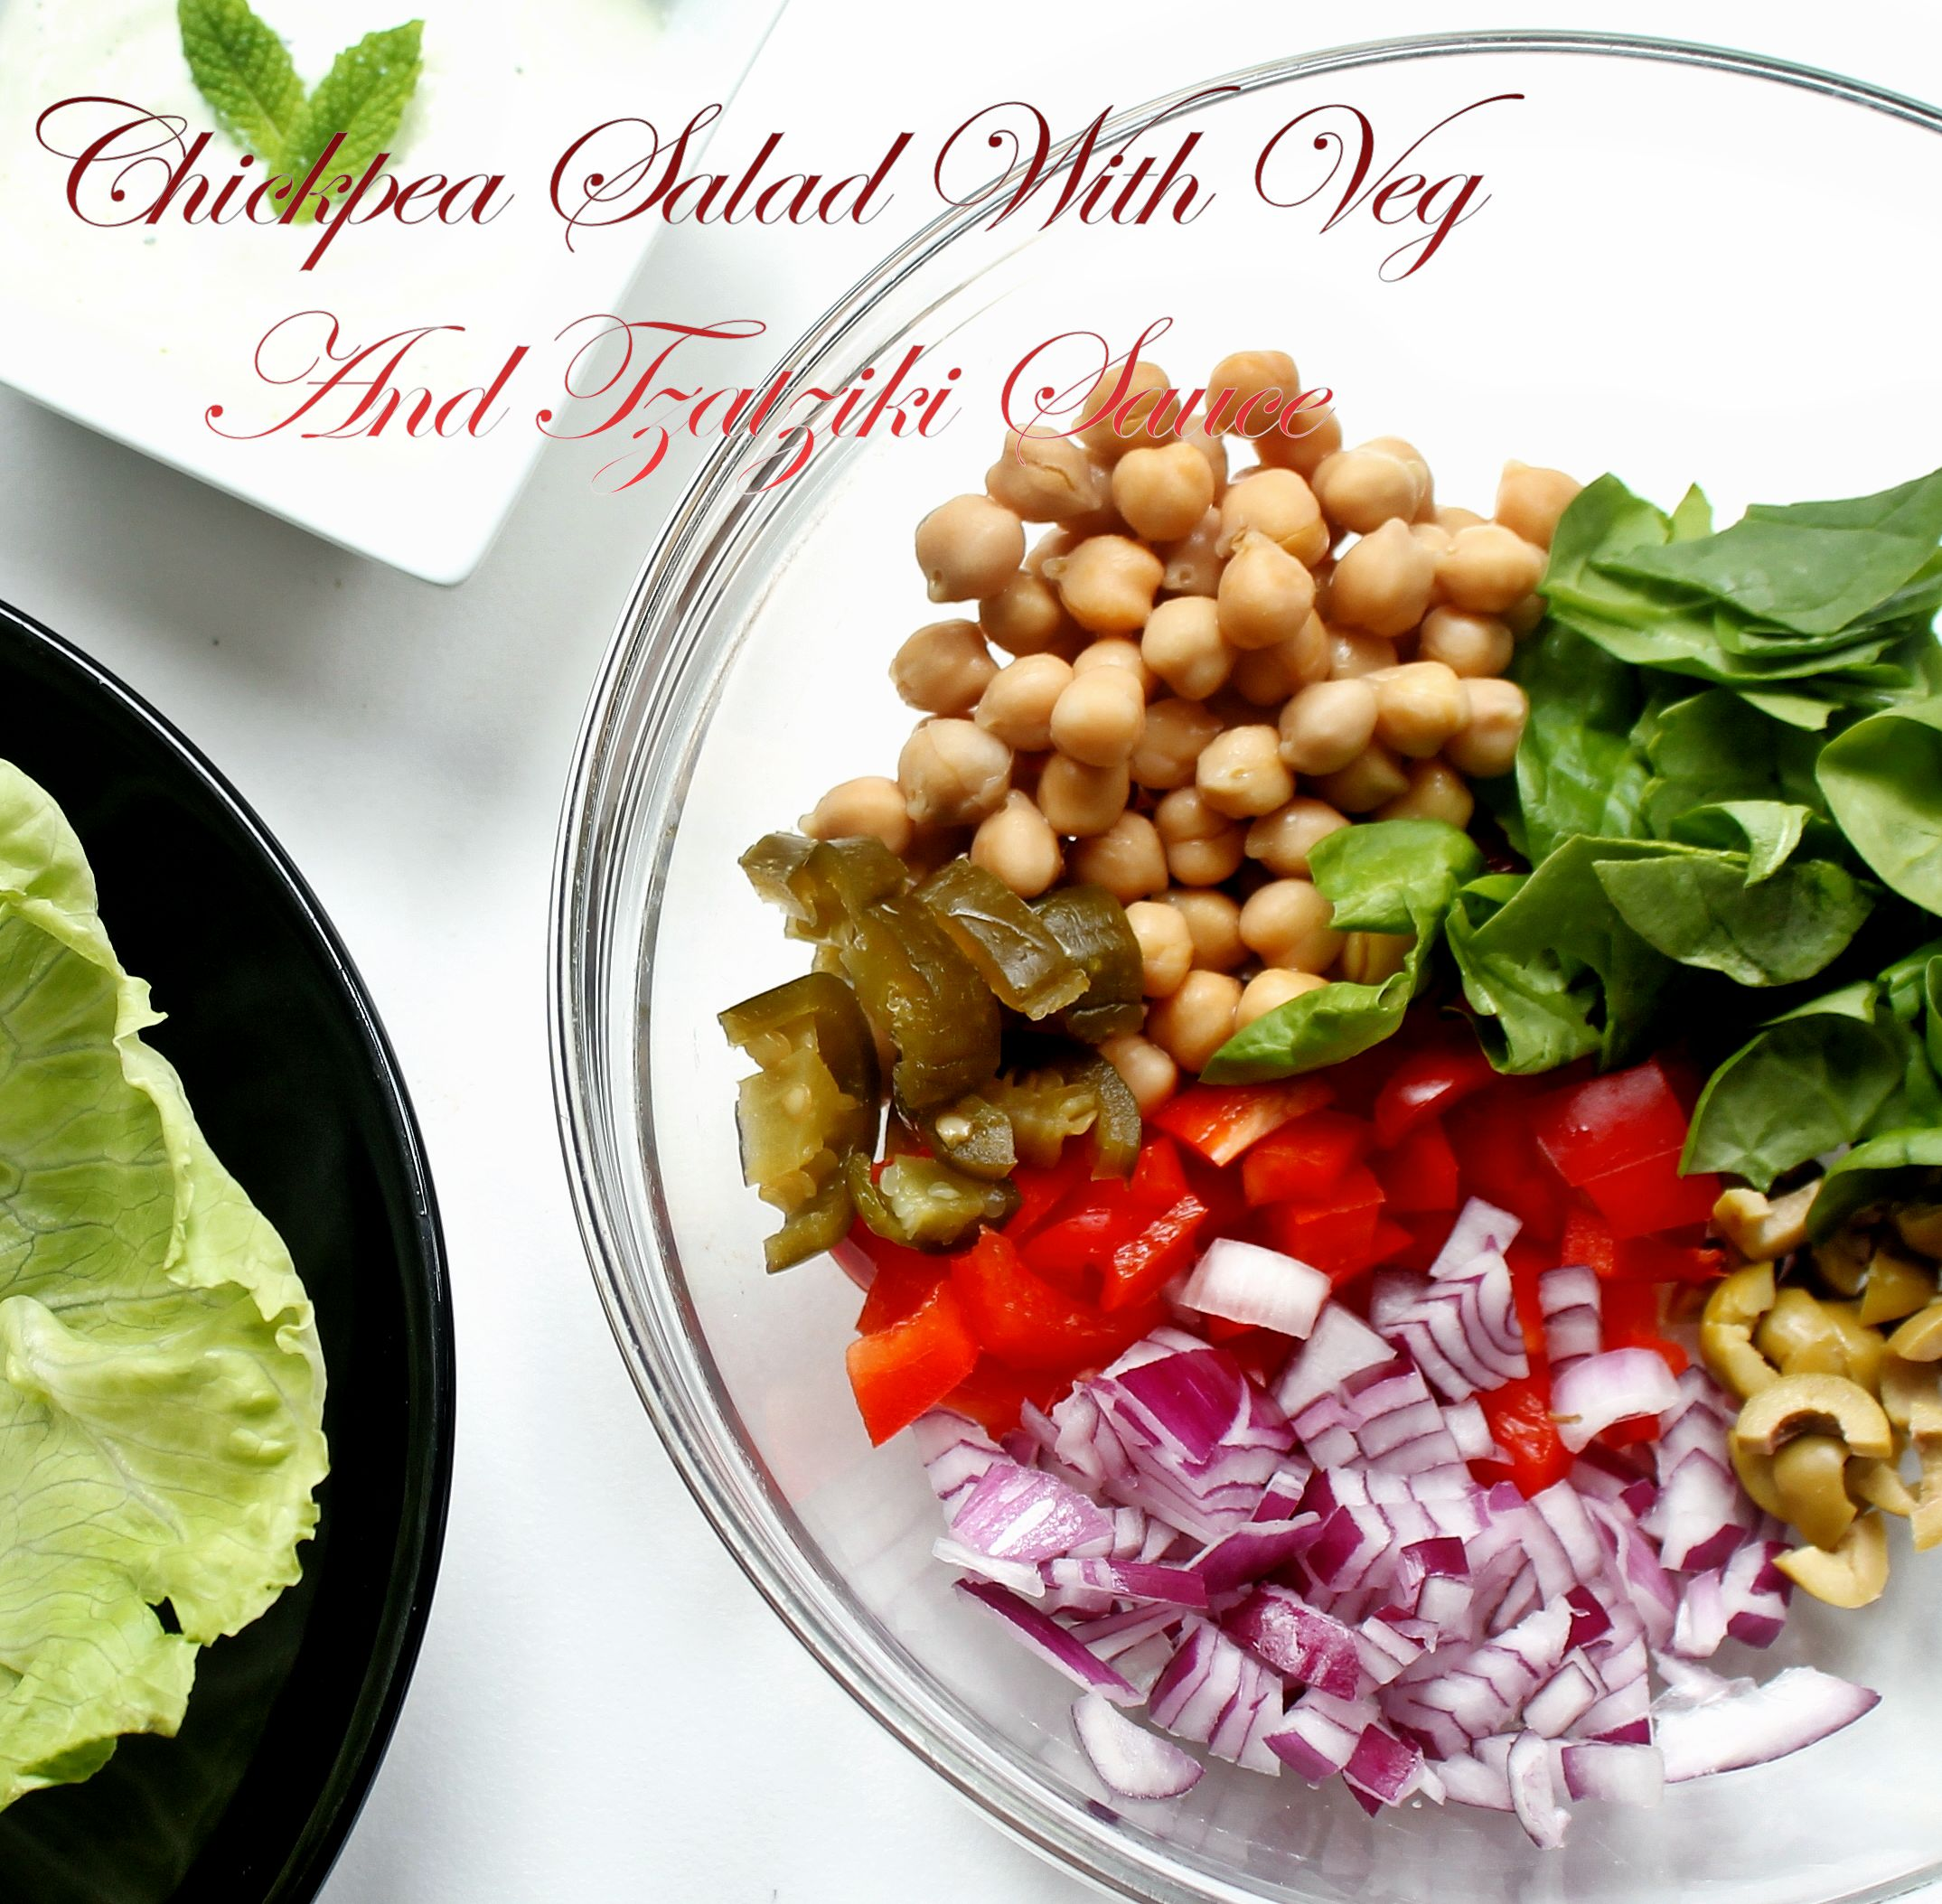 Chickpea Salad Lettuce Salad Wrap With Tzatziki Sauce